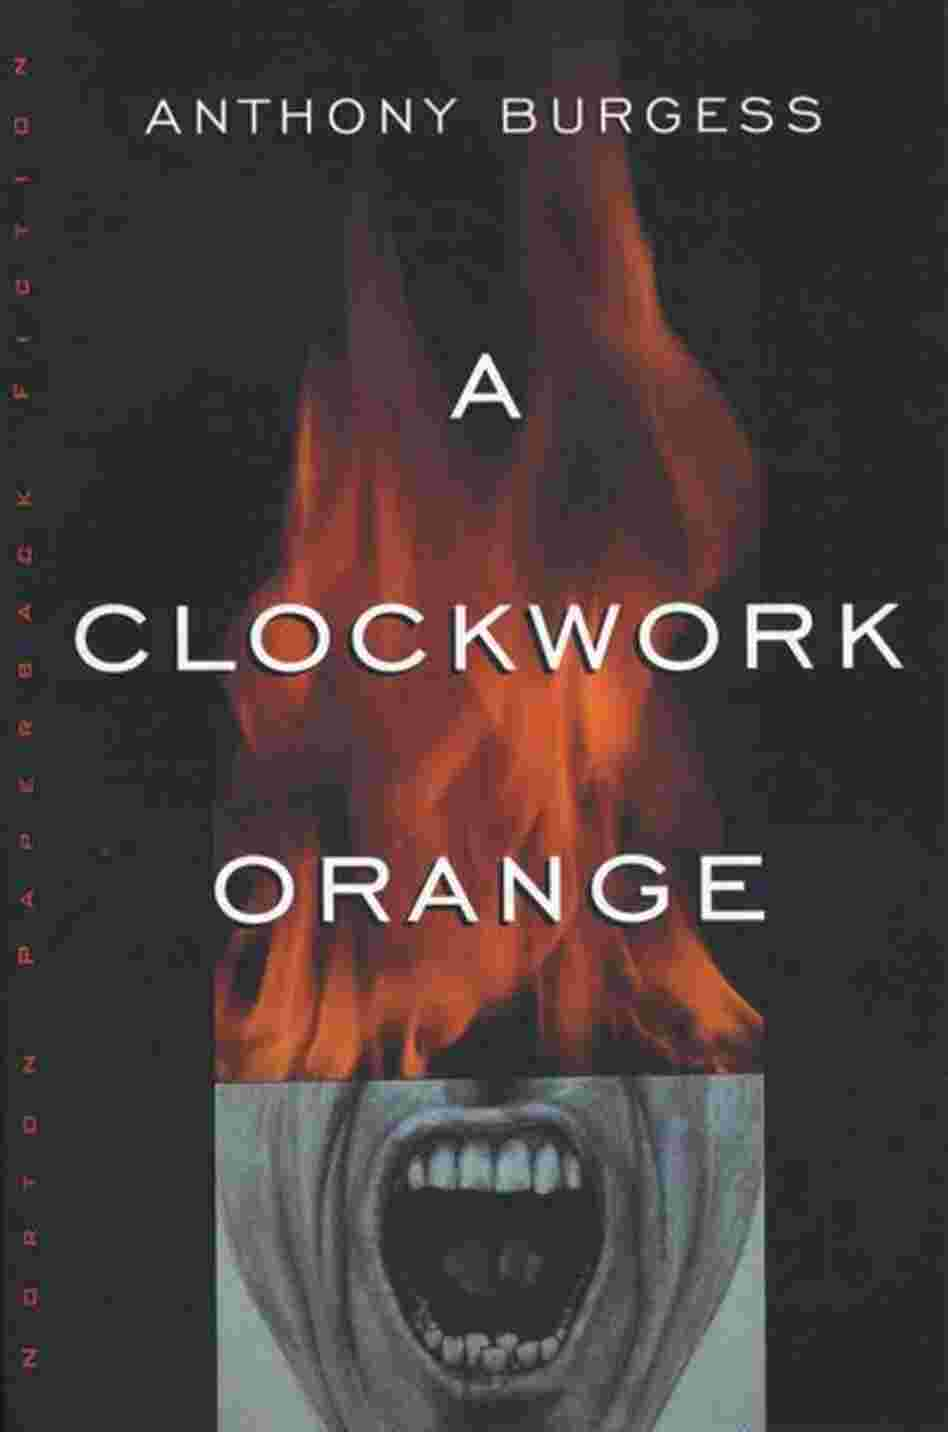 an analysis of the topic of a clockwork orange and the role of anthony burgess A clockwork orange study guide contains a biography of anthony burgess, literature essays, quiz questions, major themes, characters, and a full summary and analysis.